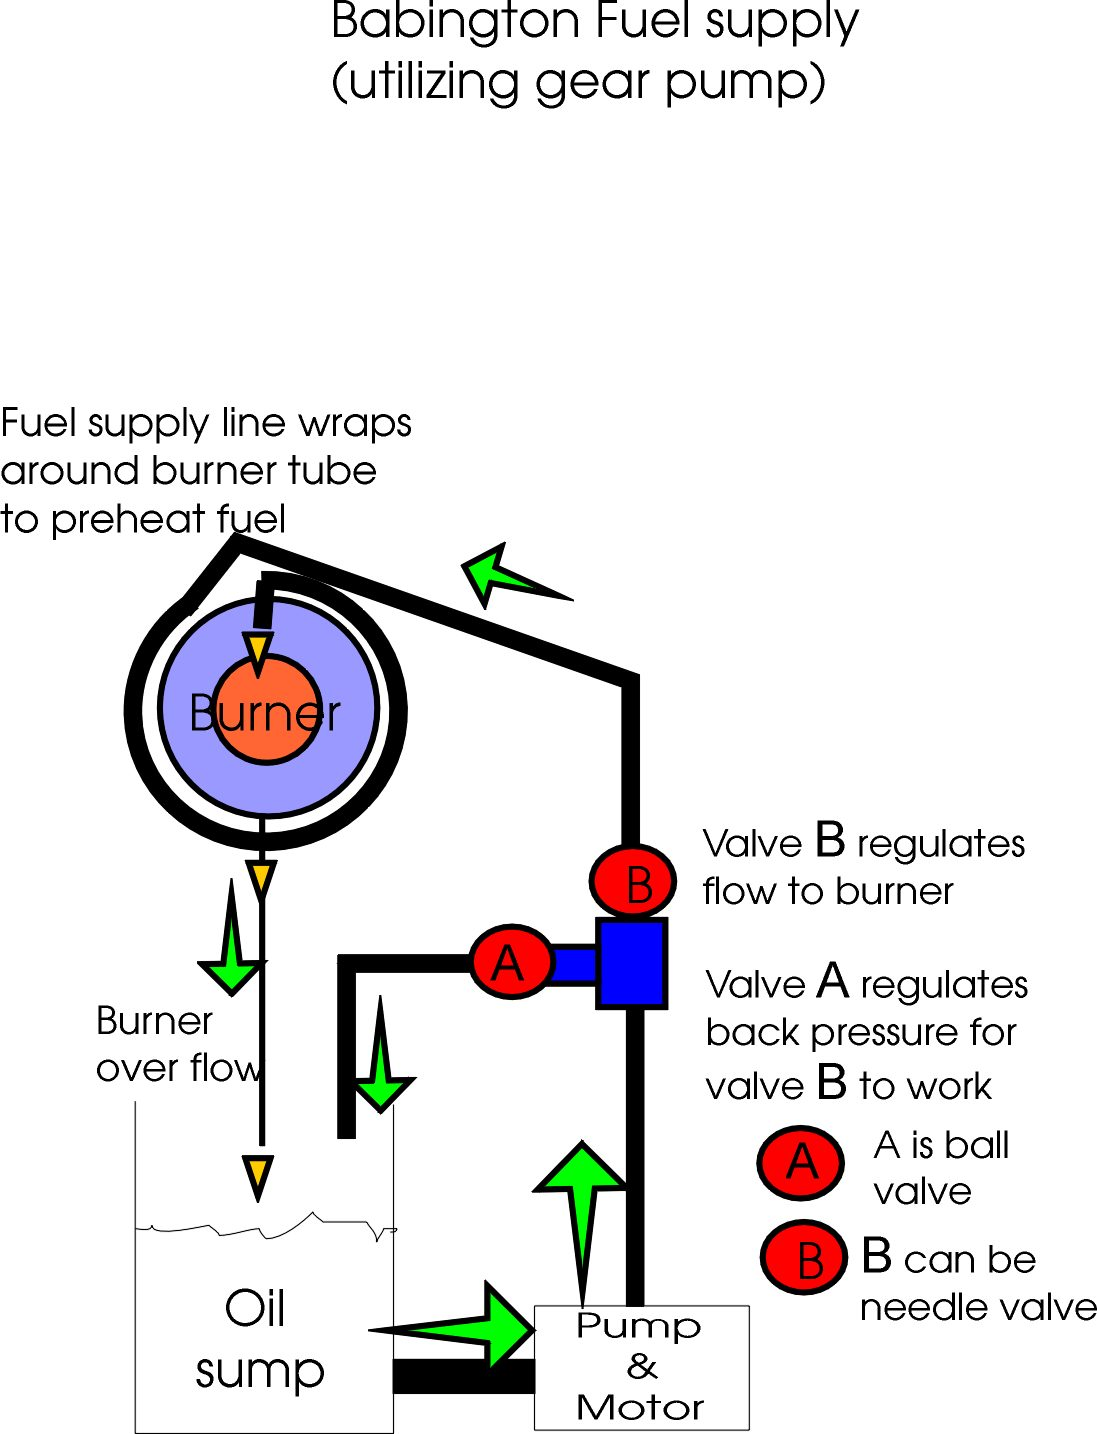 Fuel_supply laars boilers wiring diagrams laars mighty therm wiring diagram laars mighty therm wiring diagram at aneh.co